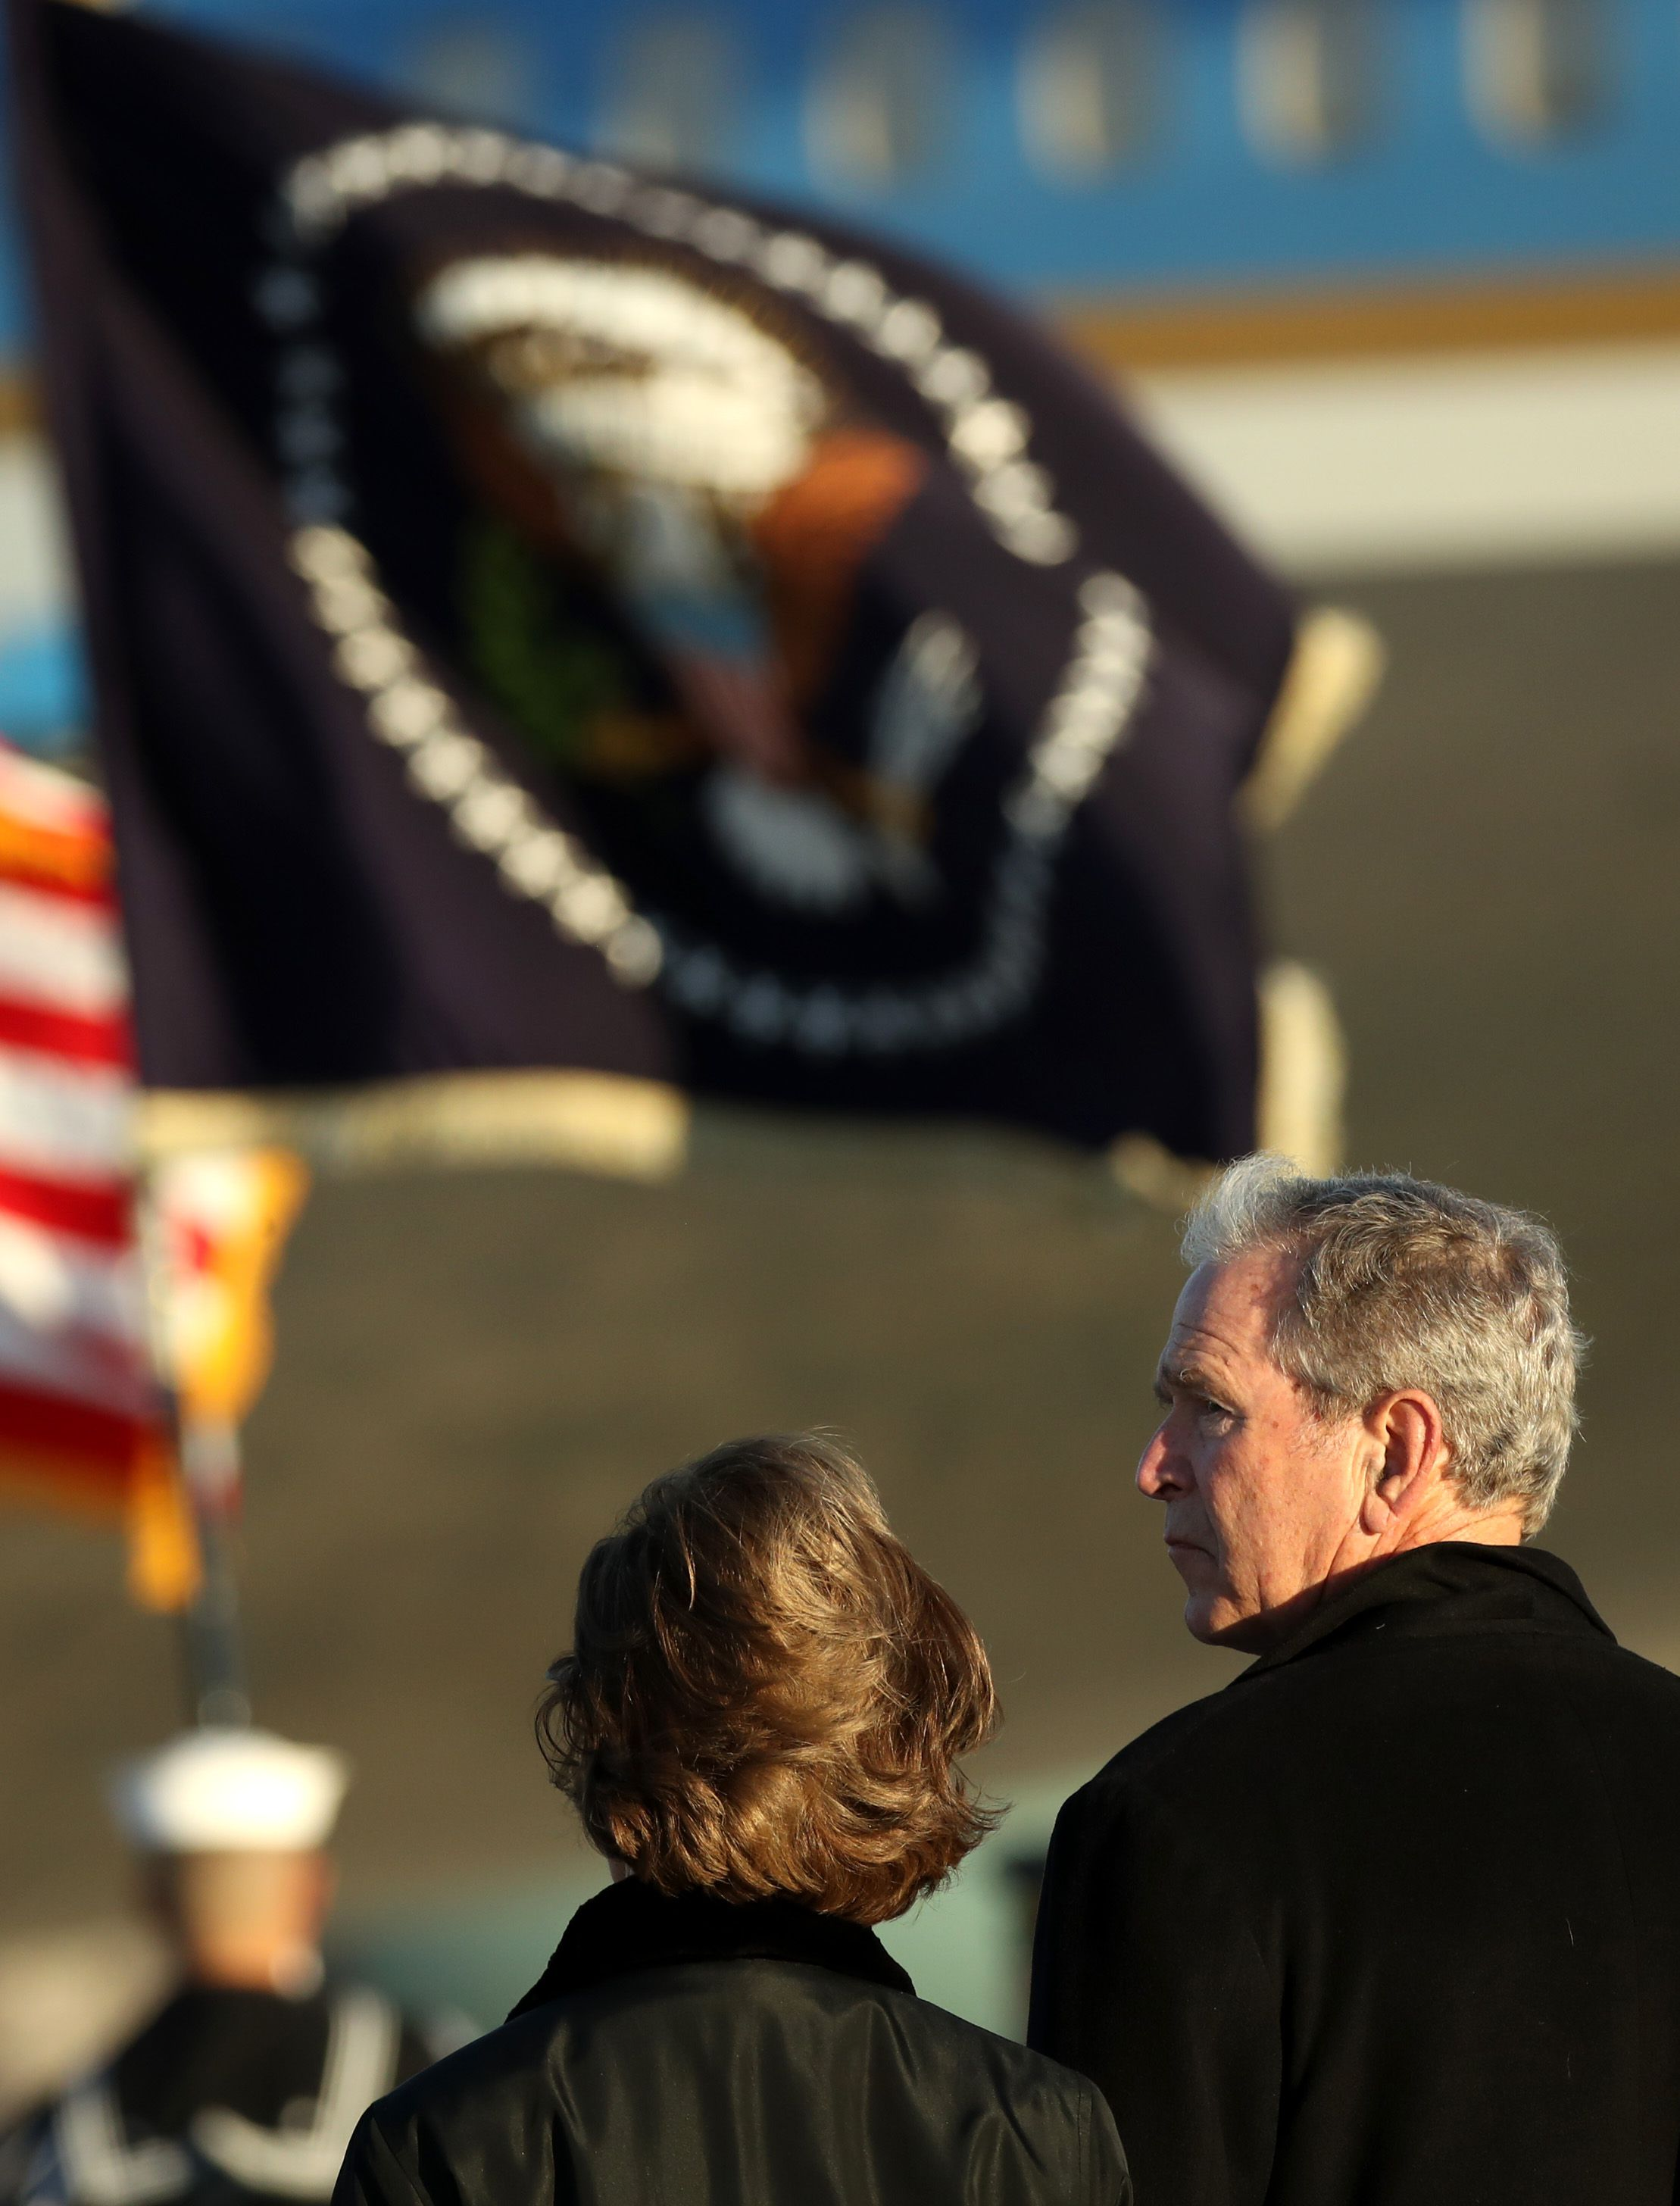 George W. Bush and Laura Bush seen from behind.